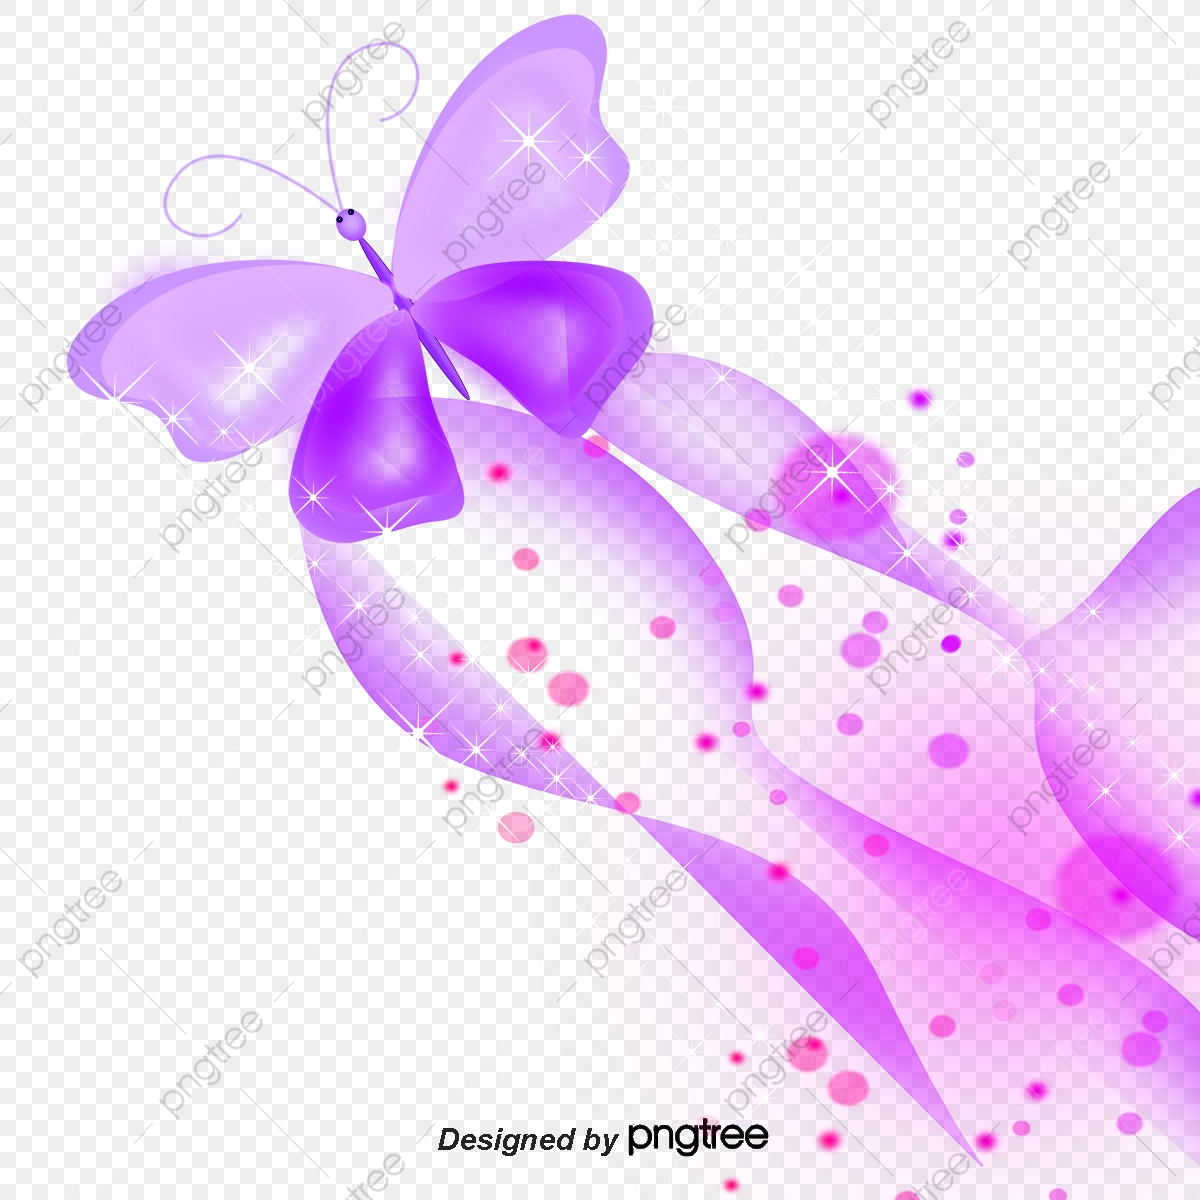 Colorful Butterfly Butterfly Clipart Purple Light Png Transparent Clipart Image And Psd File For Free Download